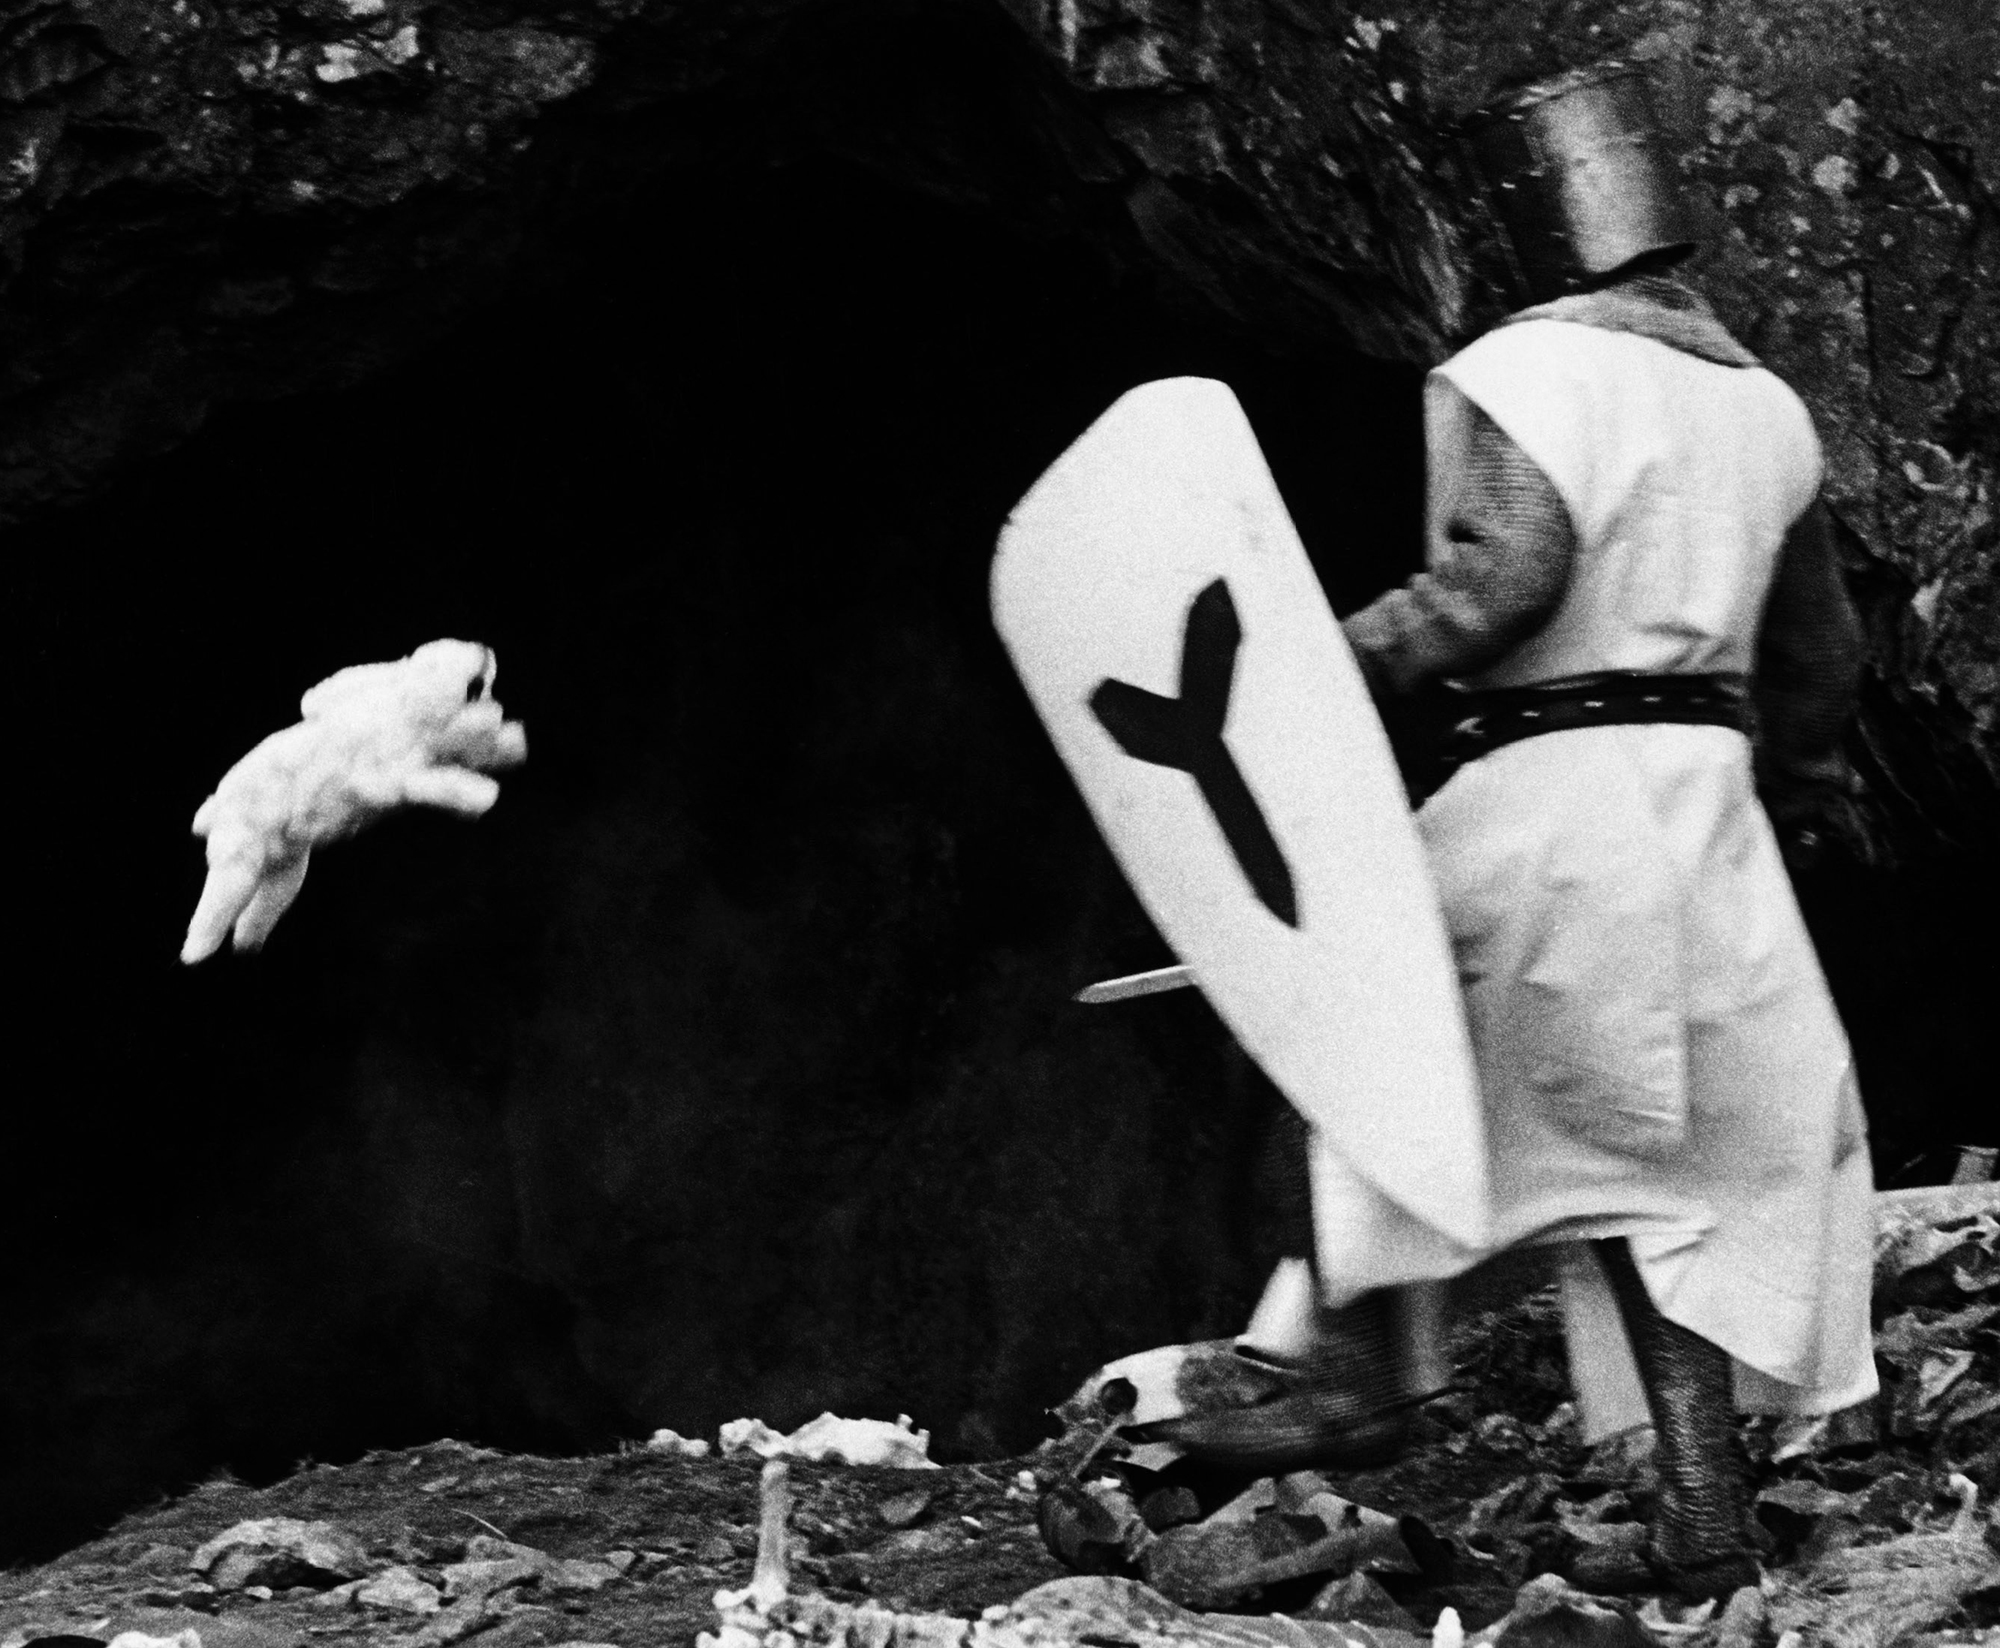 The Killer Rabbit of Caerbannog in Monty Python and the Holy Grail.